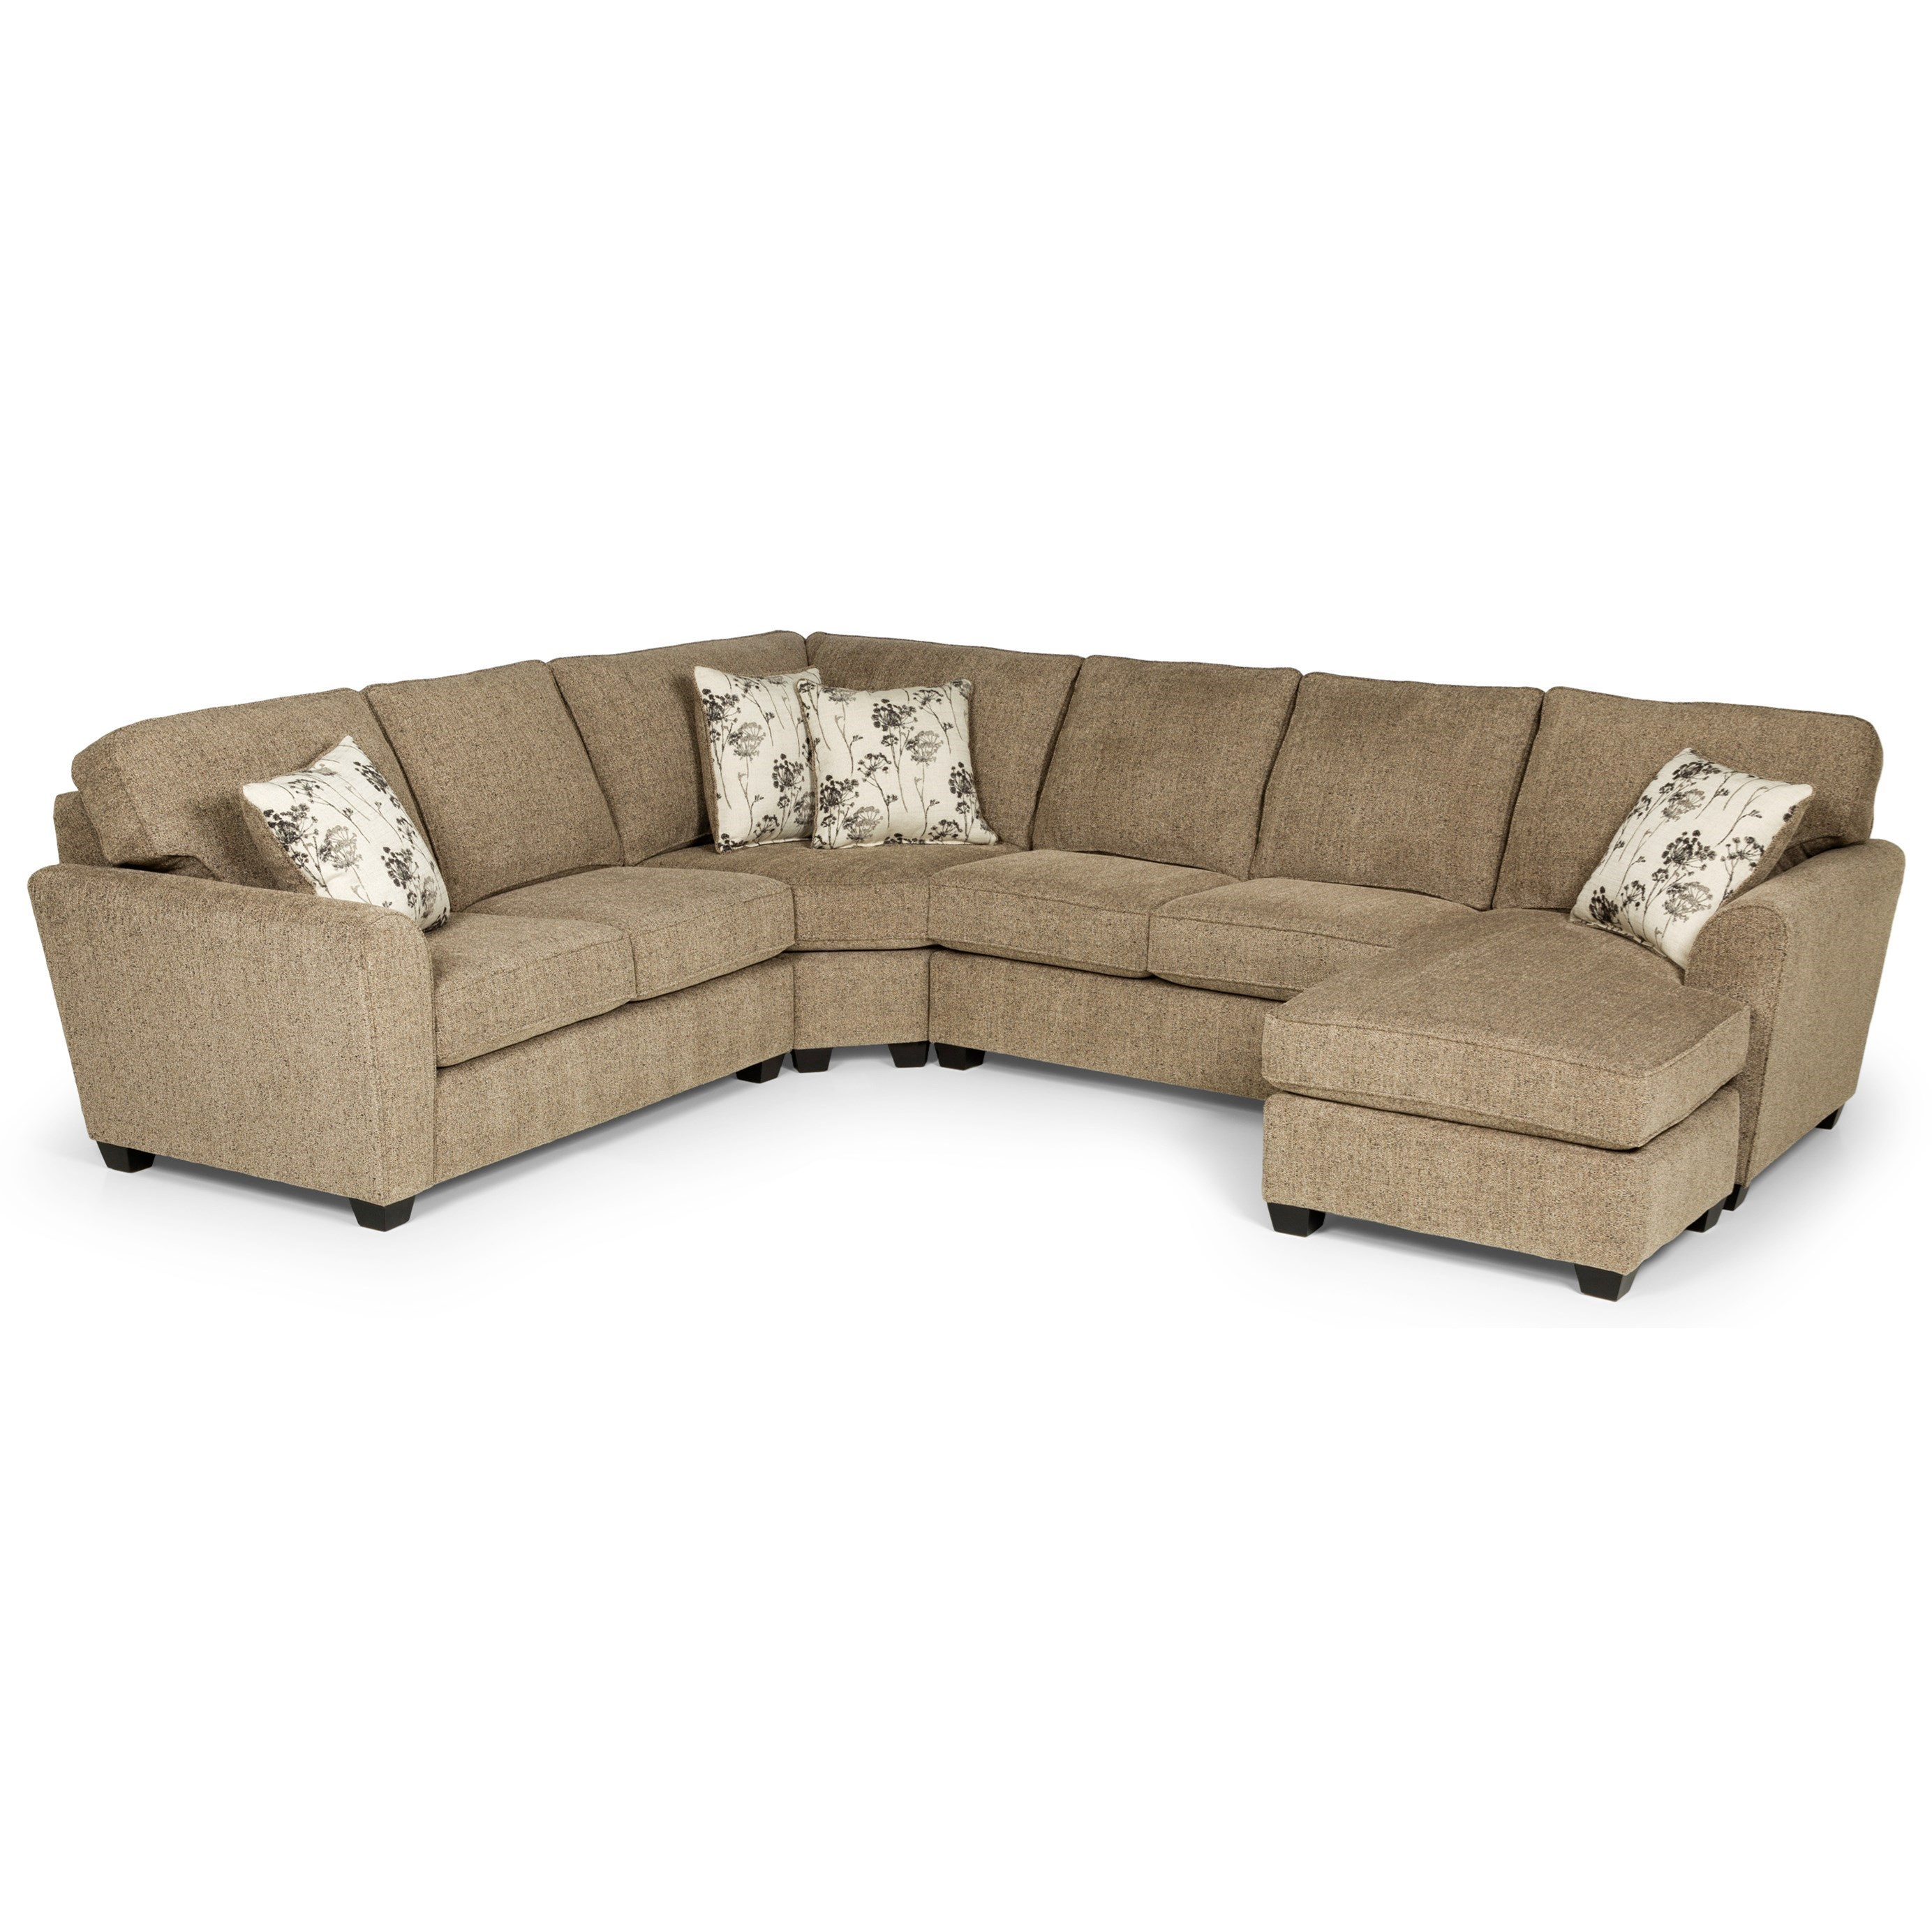 543 5-Seat Sectional Sofa w/ LAF Basic Sleeper by Sunset Home at Sadler's Home Furnishings